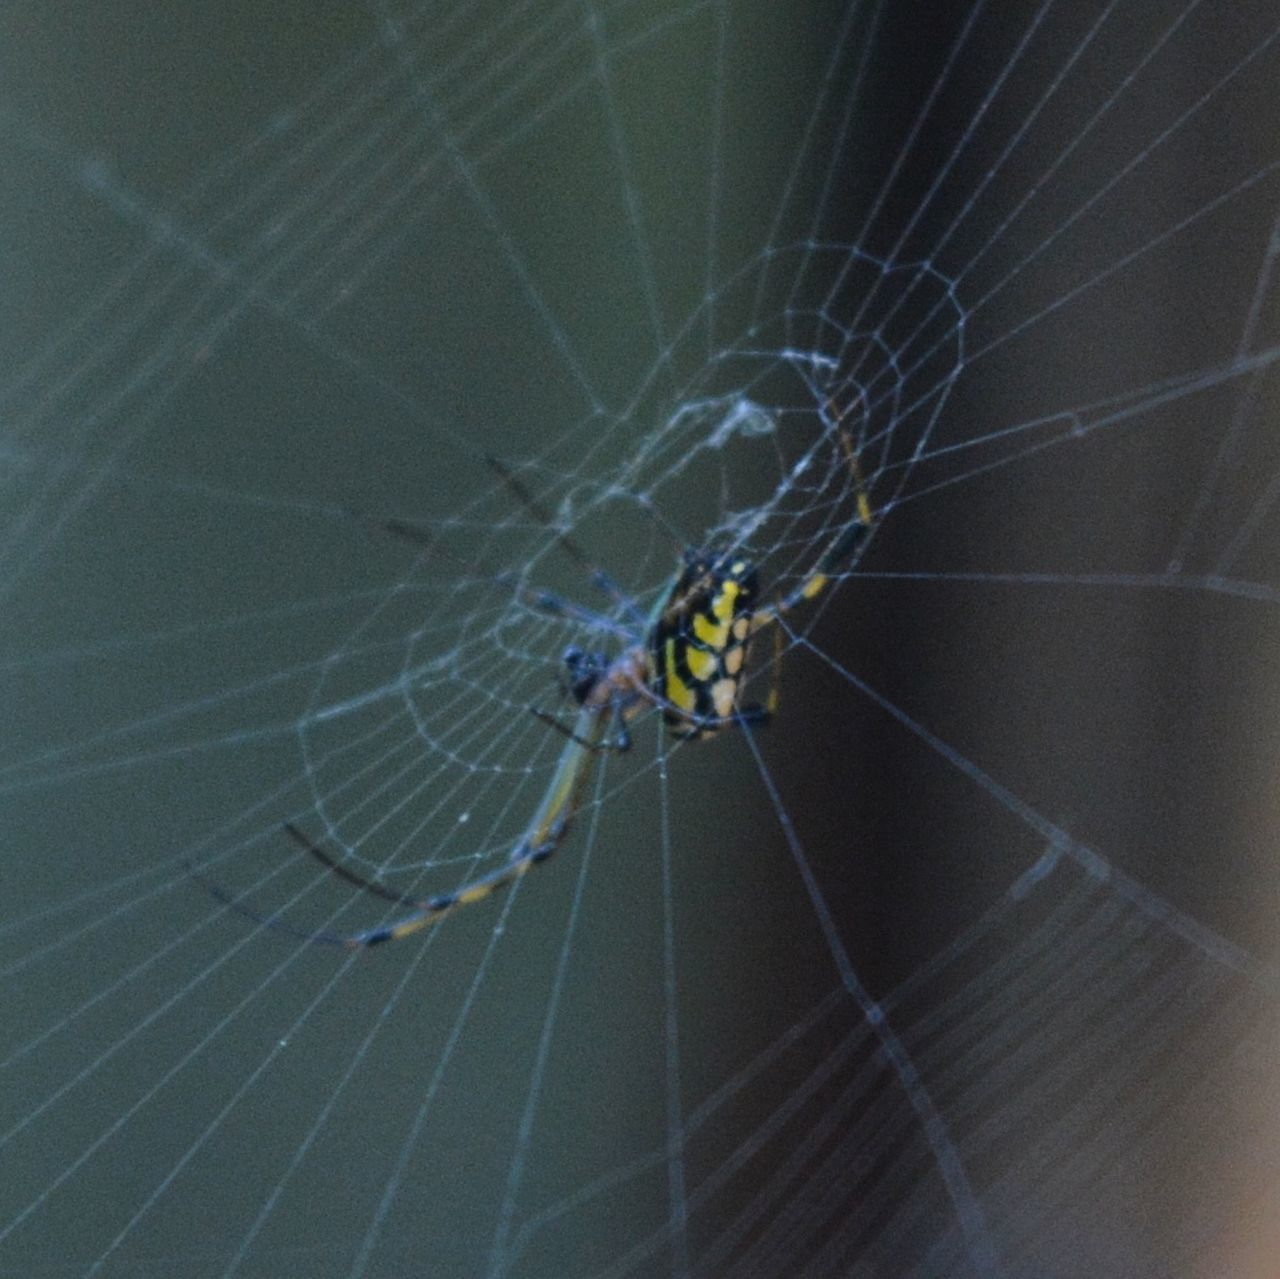 spider web, spider, web, animal themes, one animal, animals in the wild, insect, survival, nature, close-up, focus on foreground, animal leg, no people, day, fragility, outdoors, animal wildlife, beauty in nature